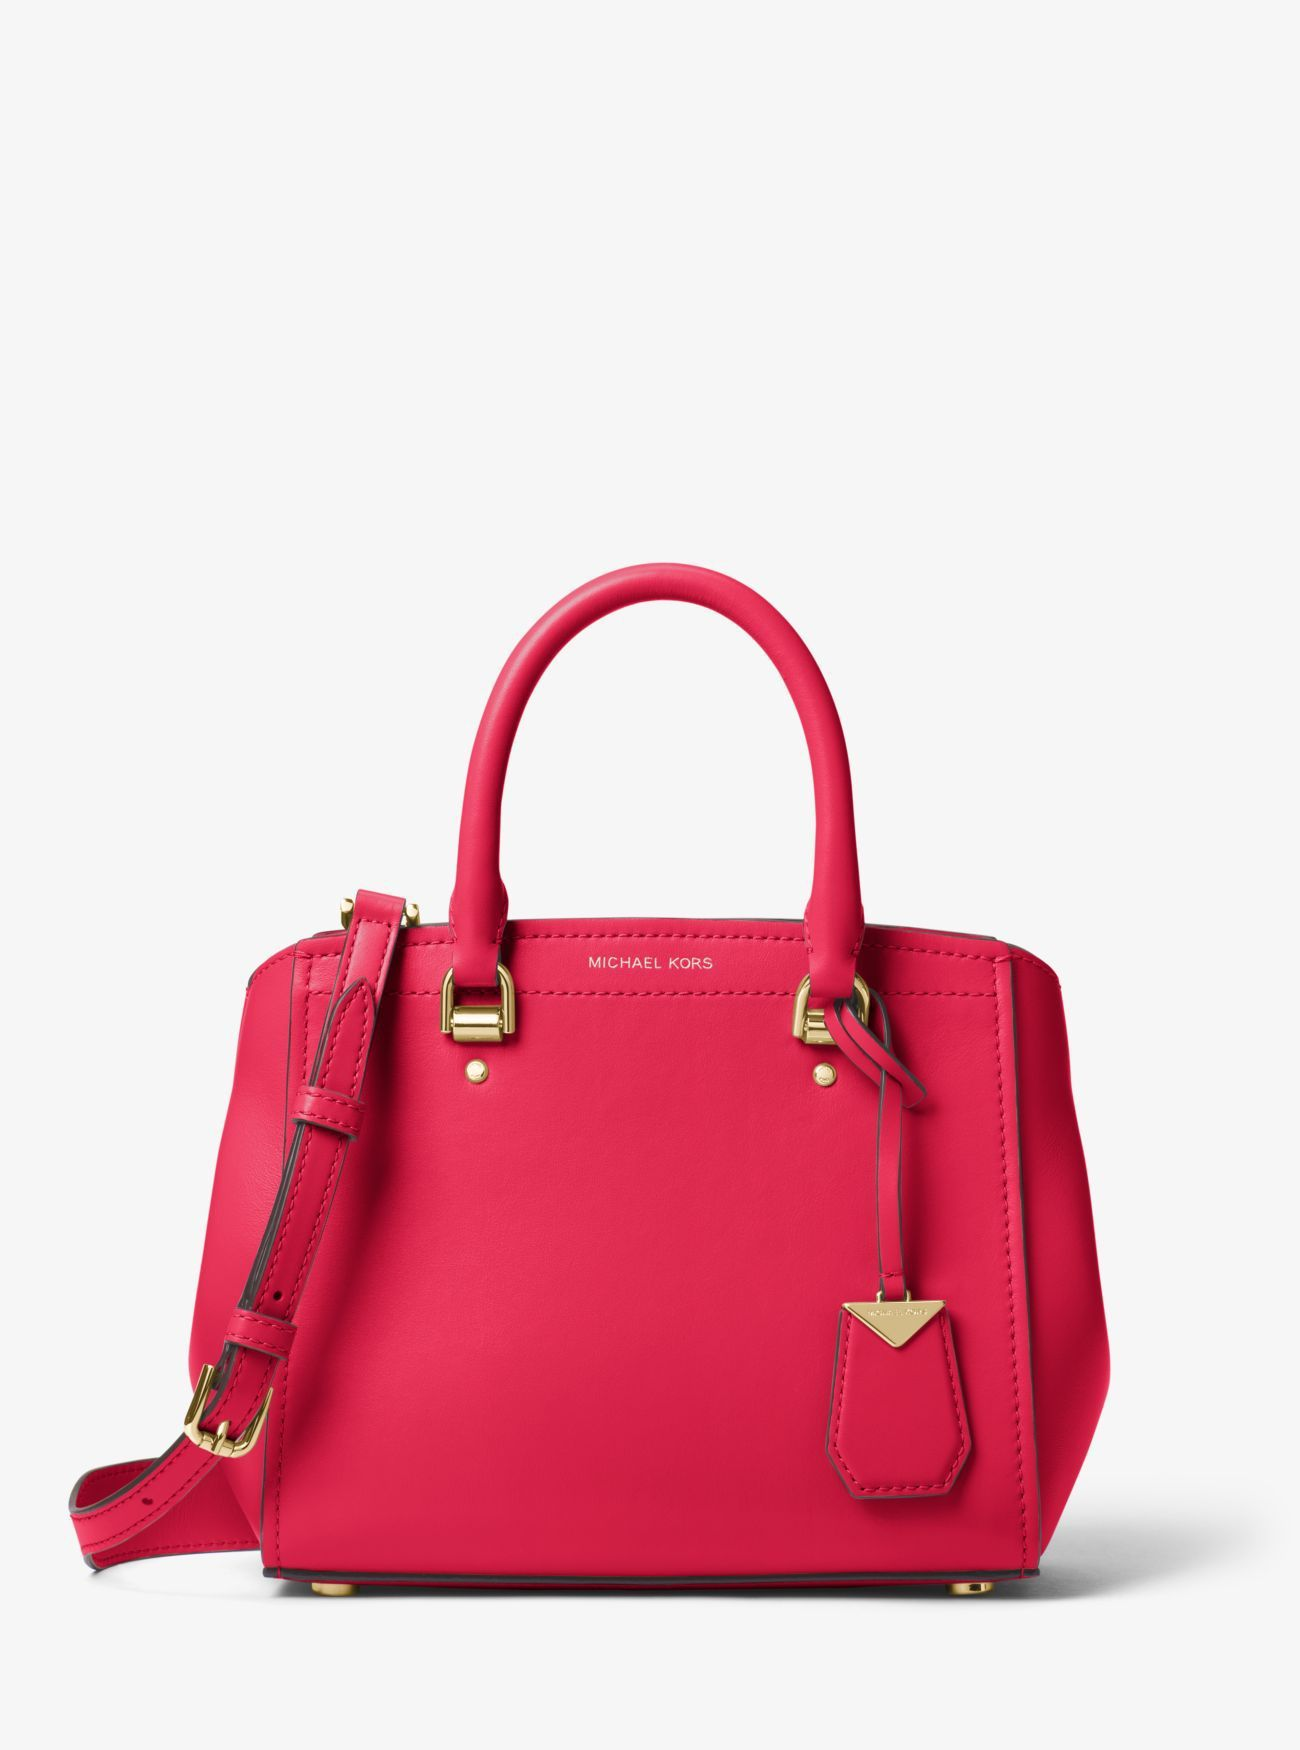 c532e24f9136d5 Michael Kors Handbags Are on Up to 75% Off for a Labor Day Sale